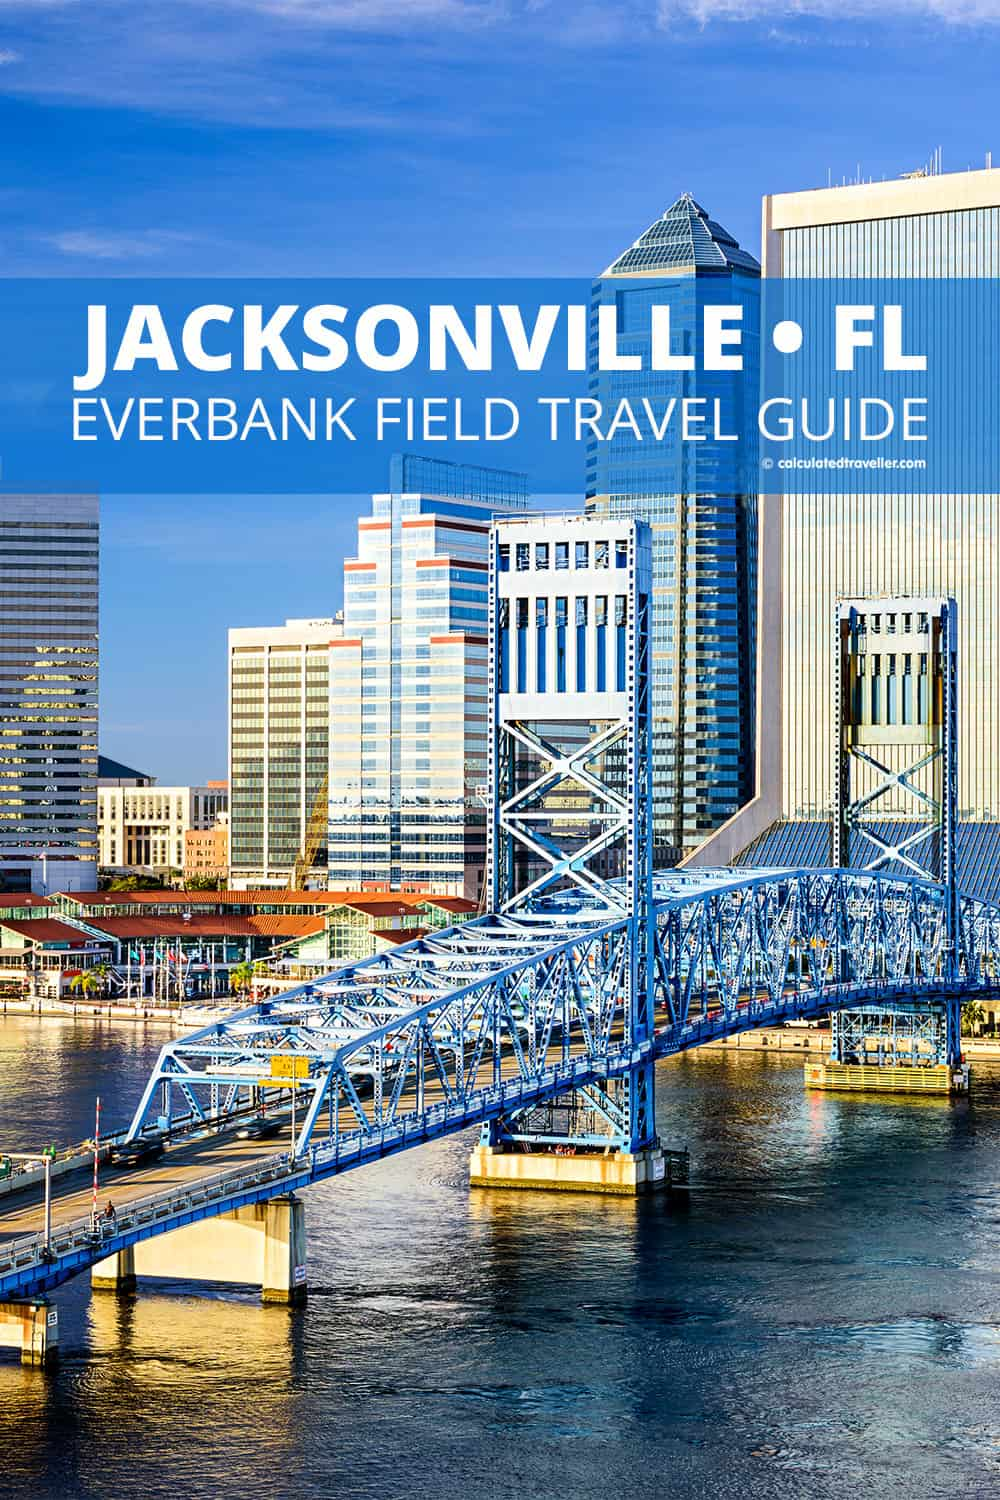 Jacksonville Florida Everbank Field Travel Guide | #Jacksonville #Florida #EverBank #travel #guide